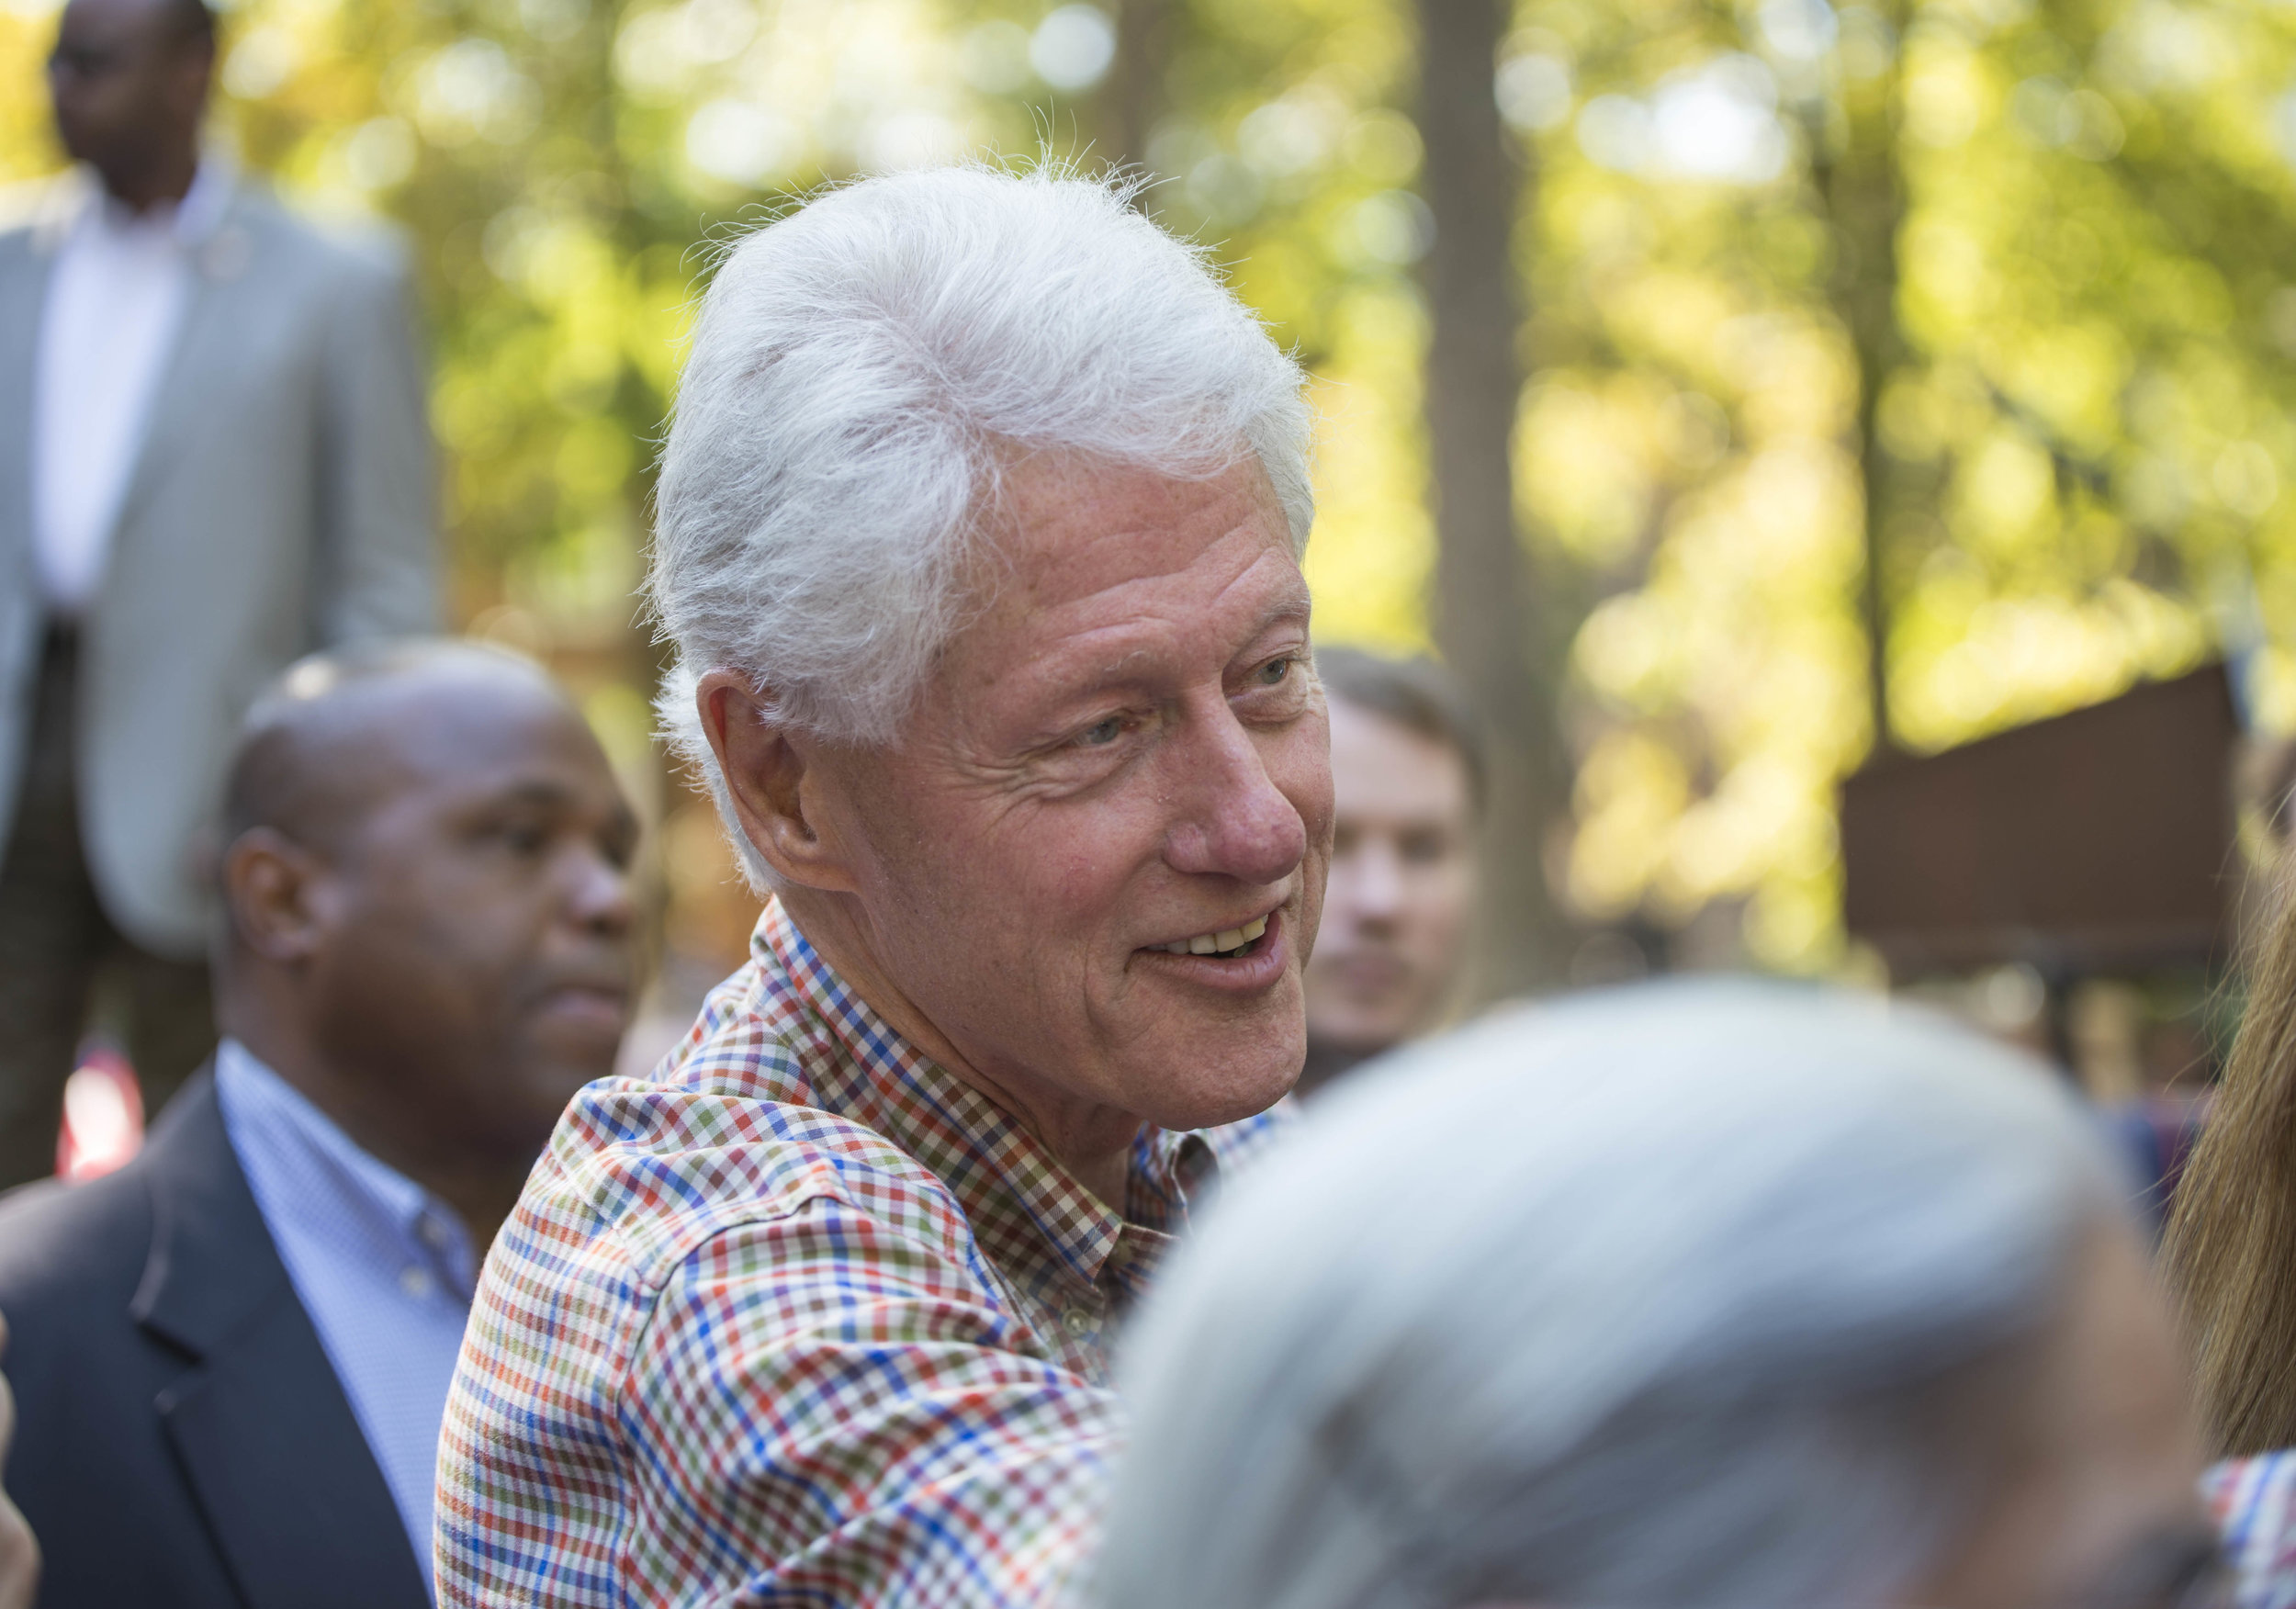 Former President Bill Clinton shaking hands with supporters after a campaign stop for his wife, Democratic nominee for president, Hillary Clinton in Athens, Ohio on October 4, 2016.